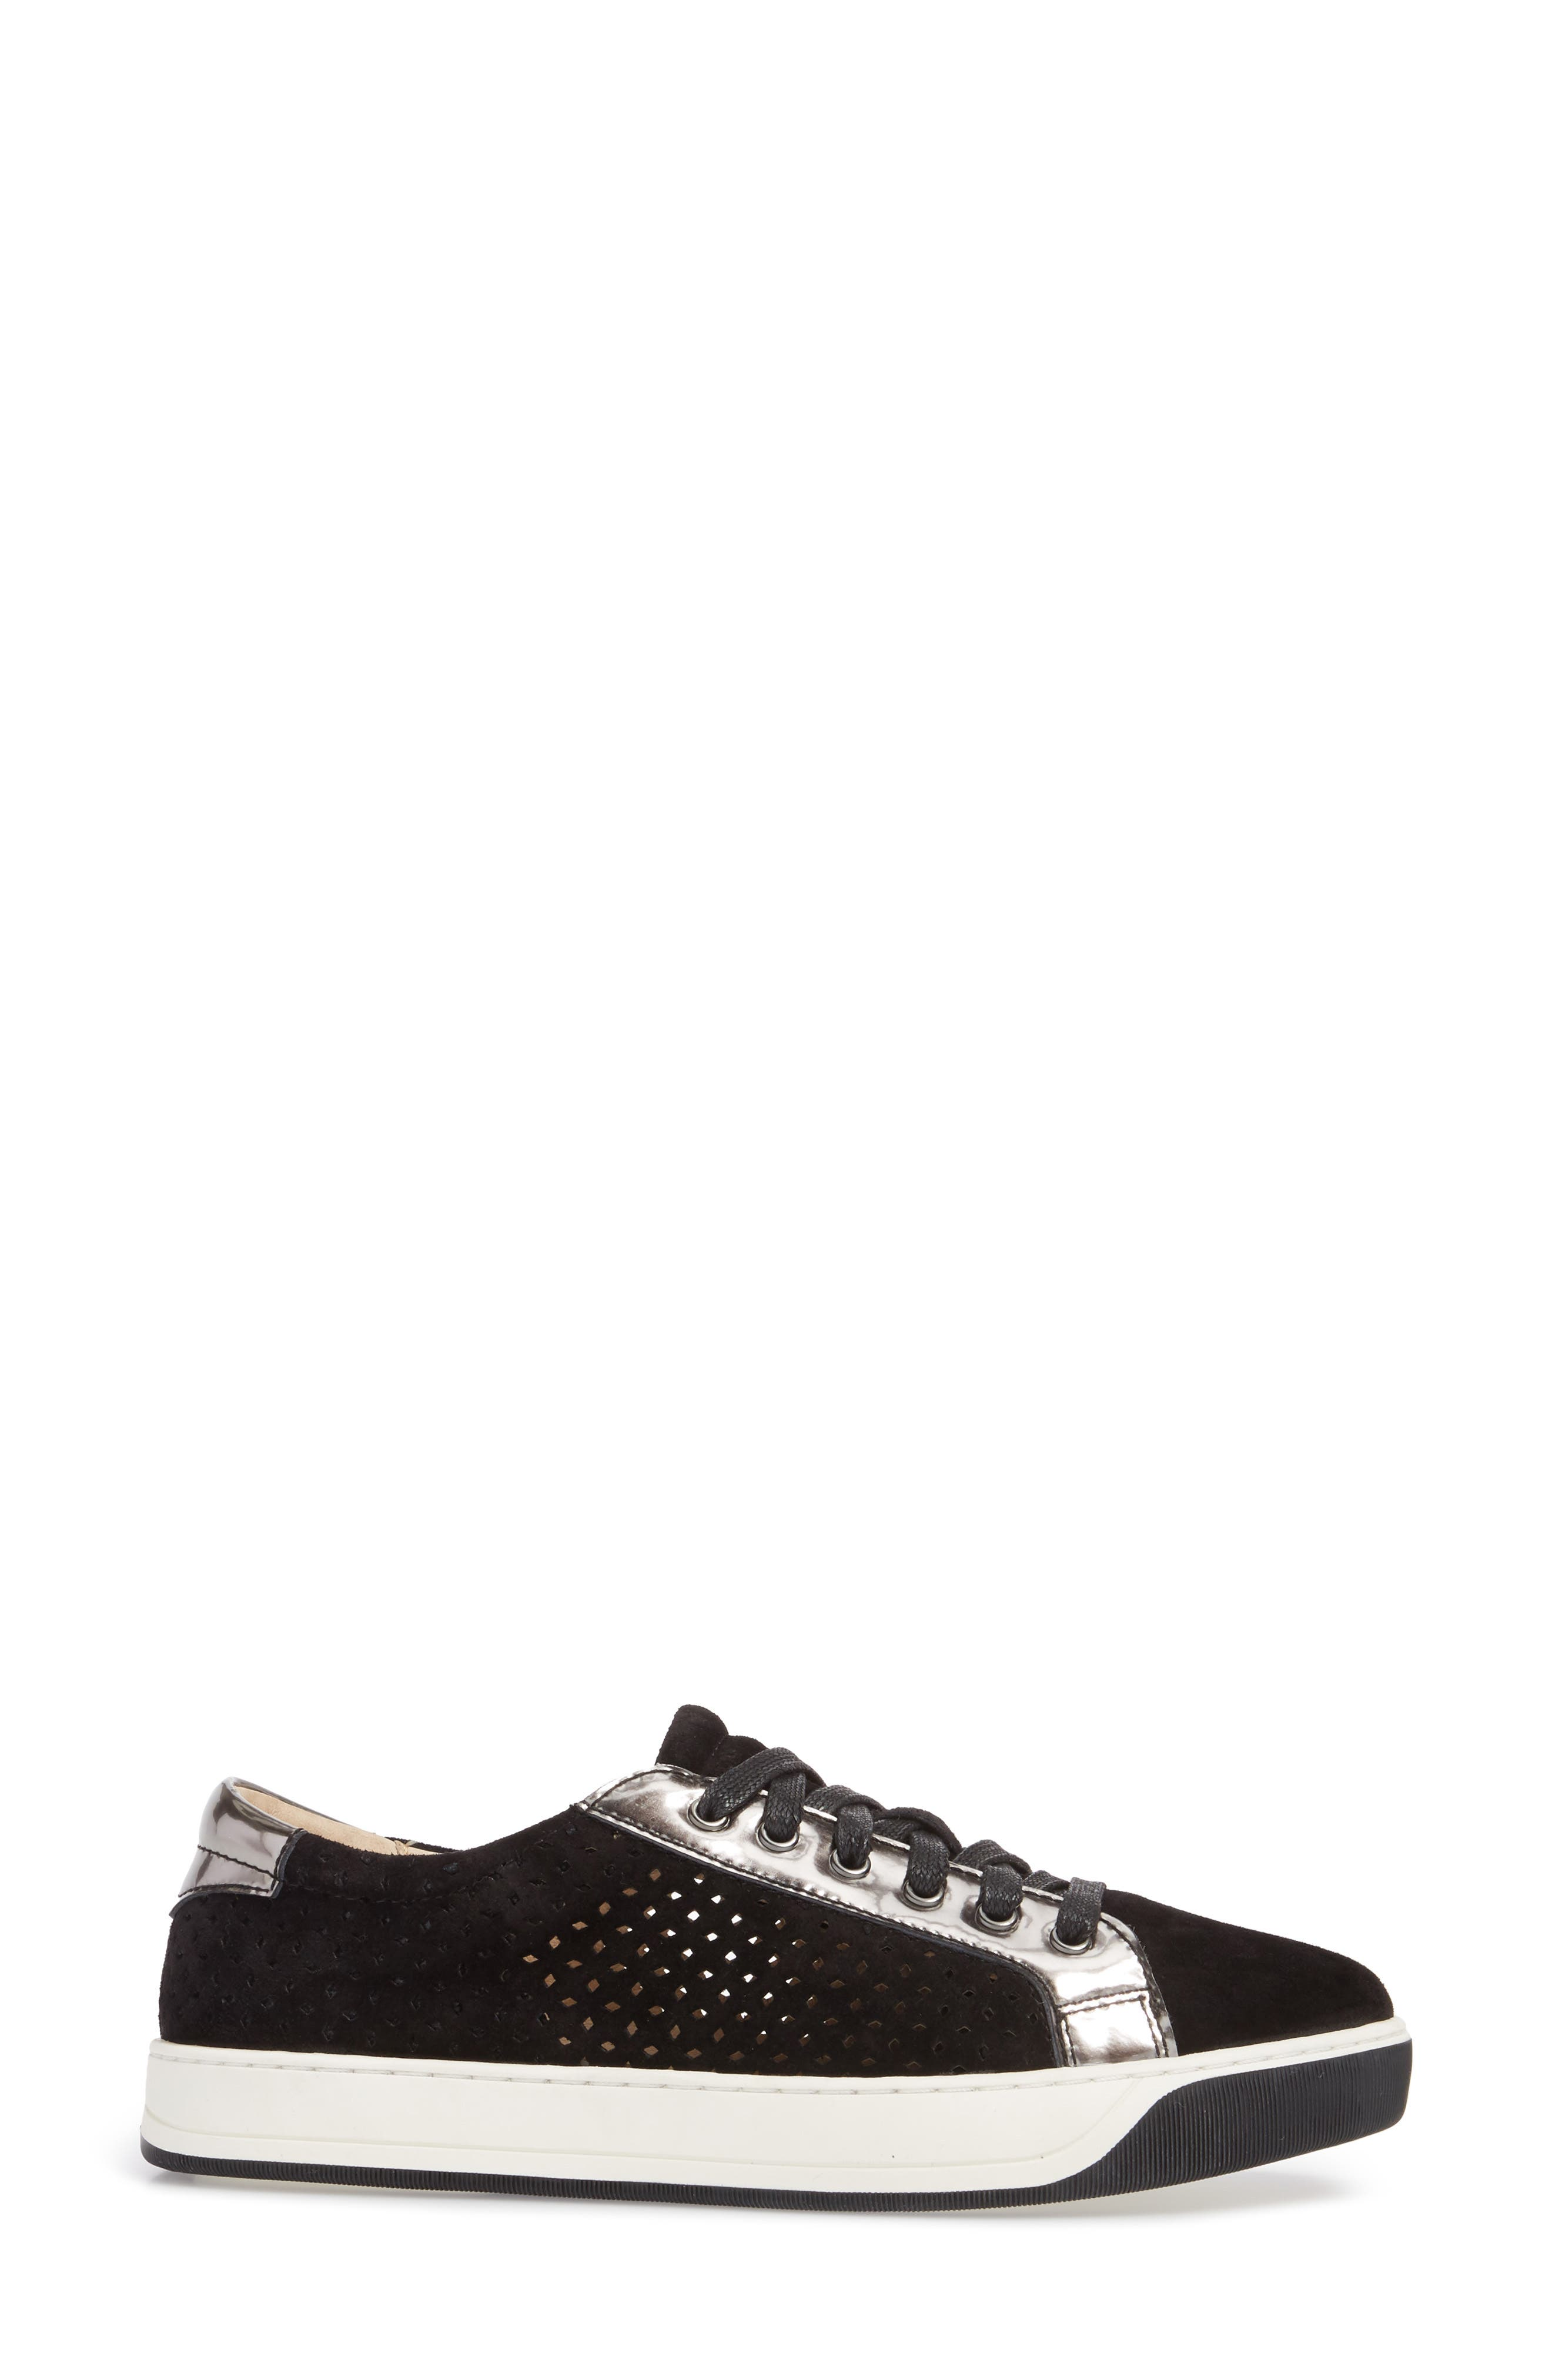 Emerson Perforated Sneaker,                             Alternate thumbnail 3, color,                             001